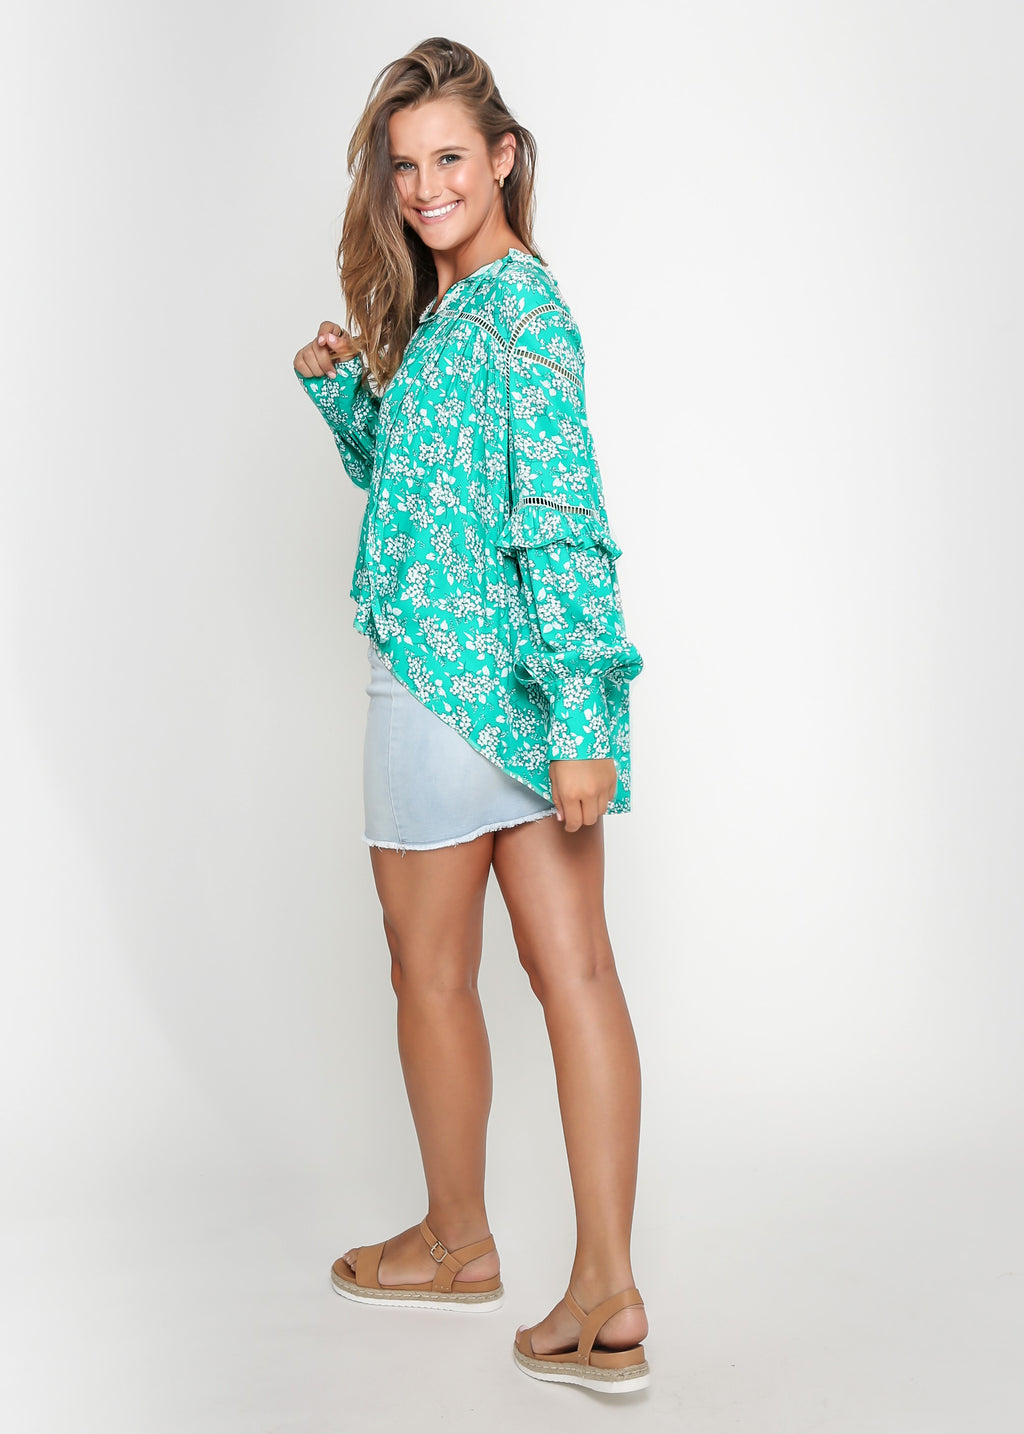 ELIANNA TOP - GREEN FLORAL - MARK DOWN MADNESS